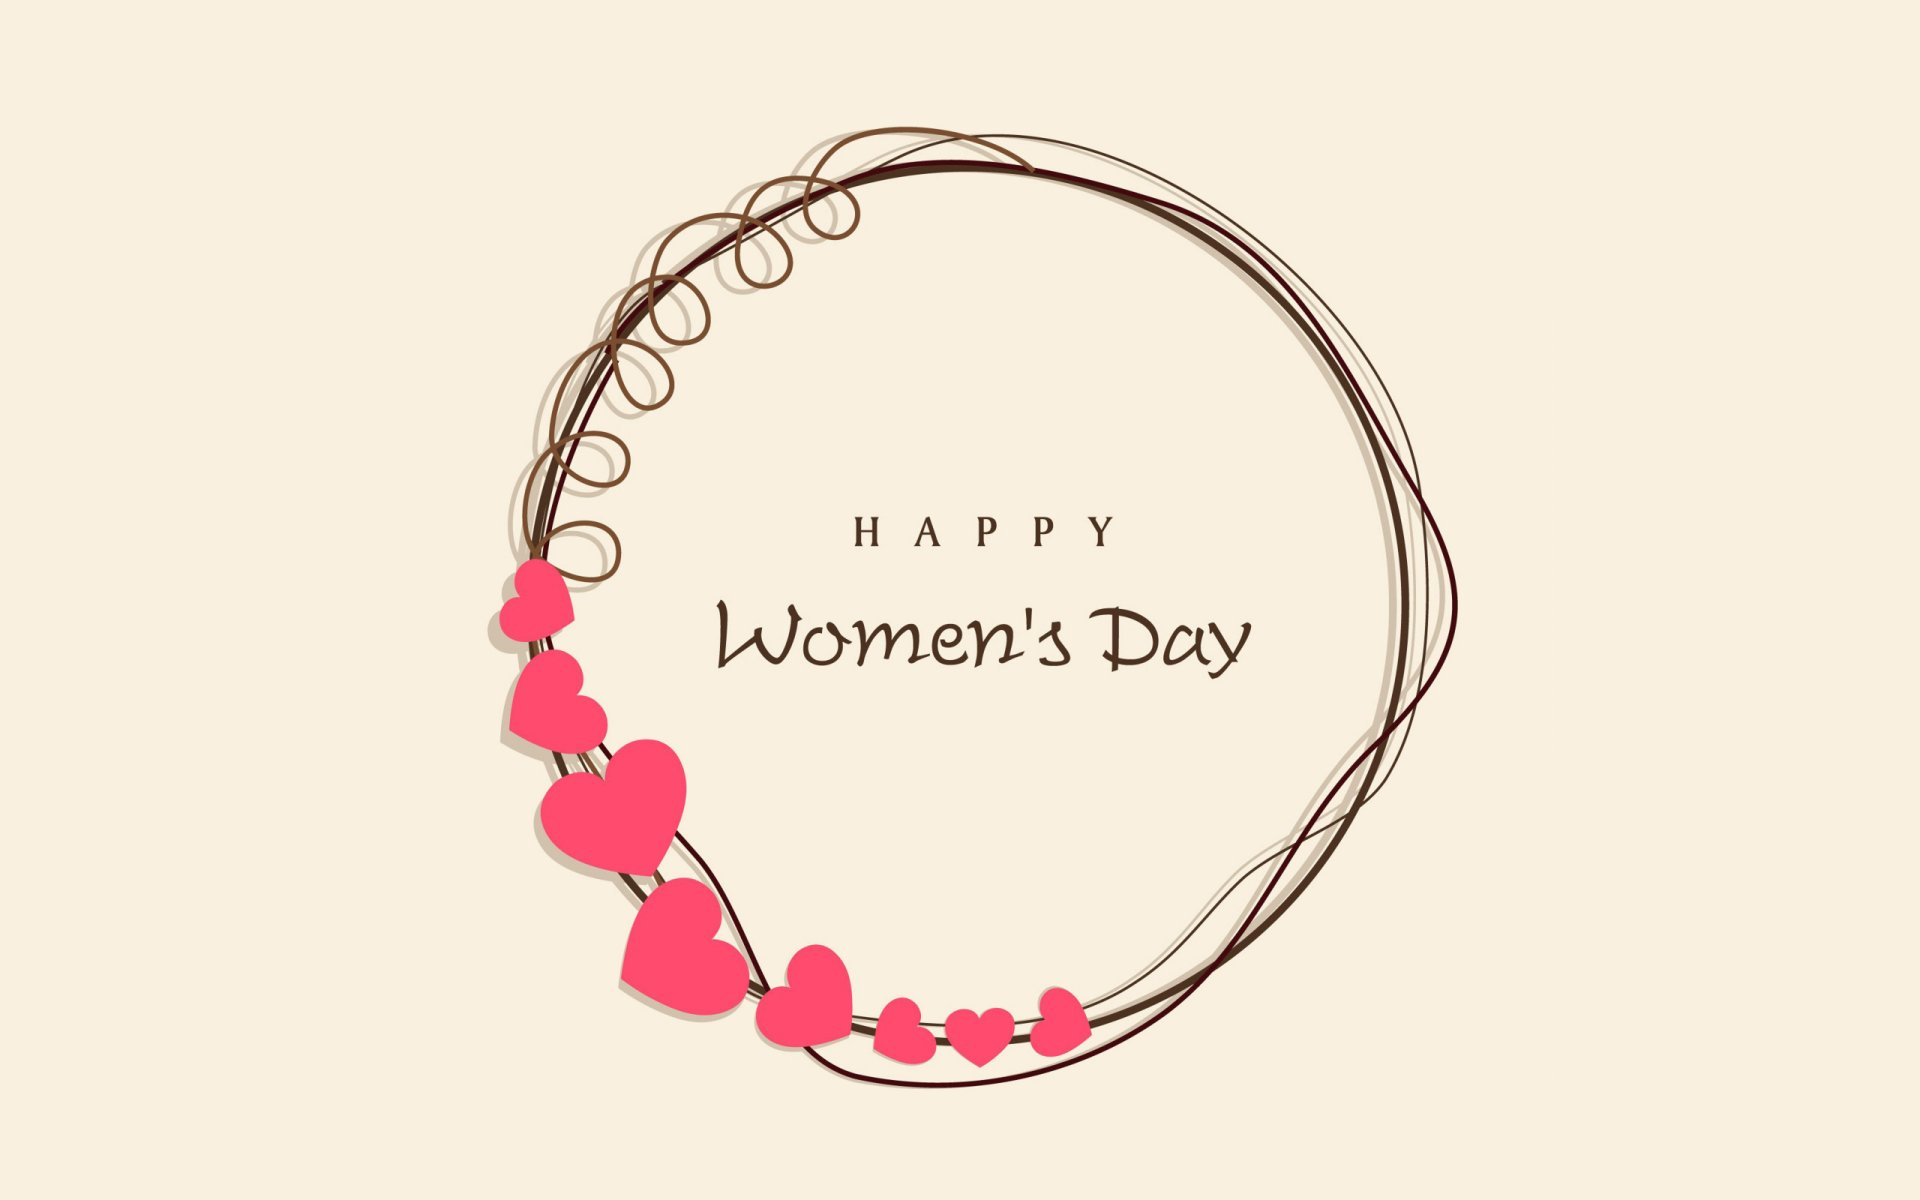 Holiday - Women's Day  Heart Circle Minimalist Statement Happy Women's Day Wallpaper